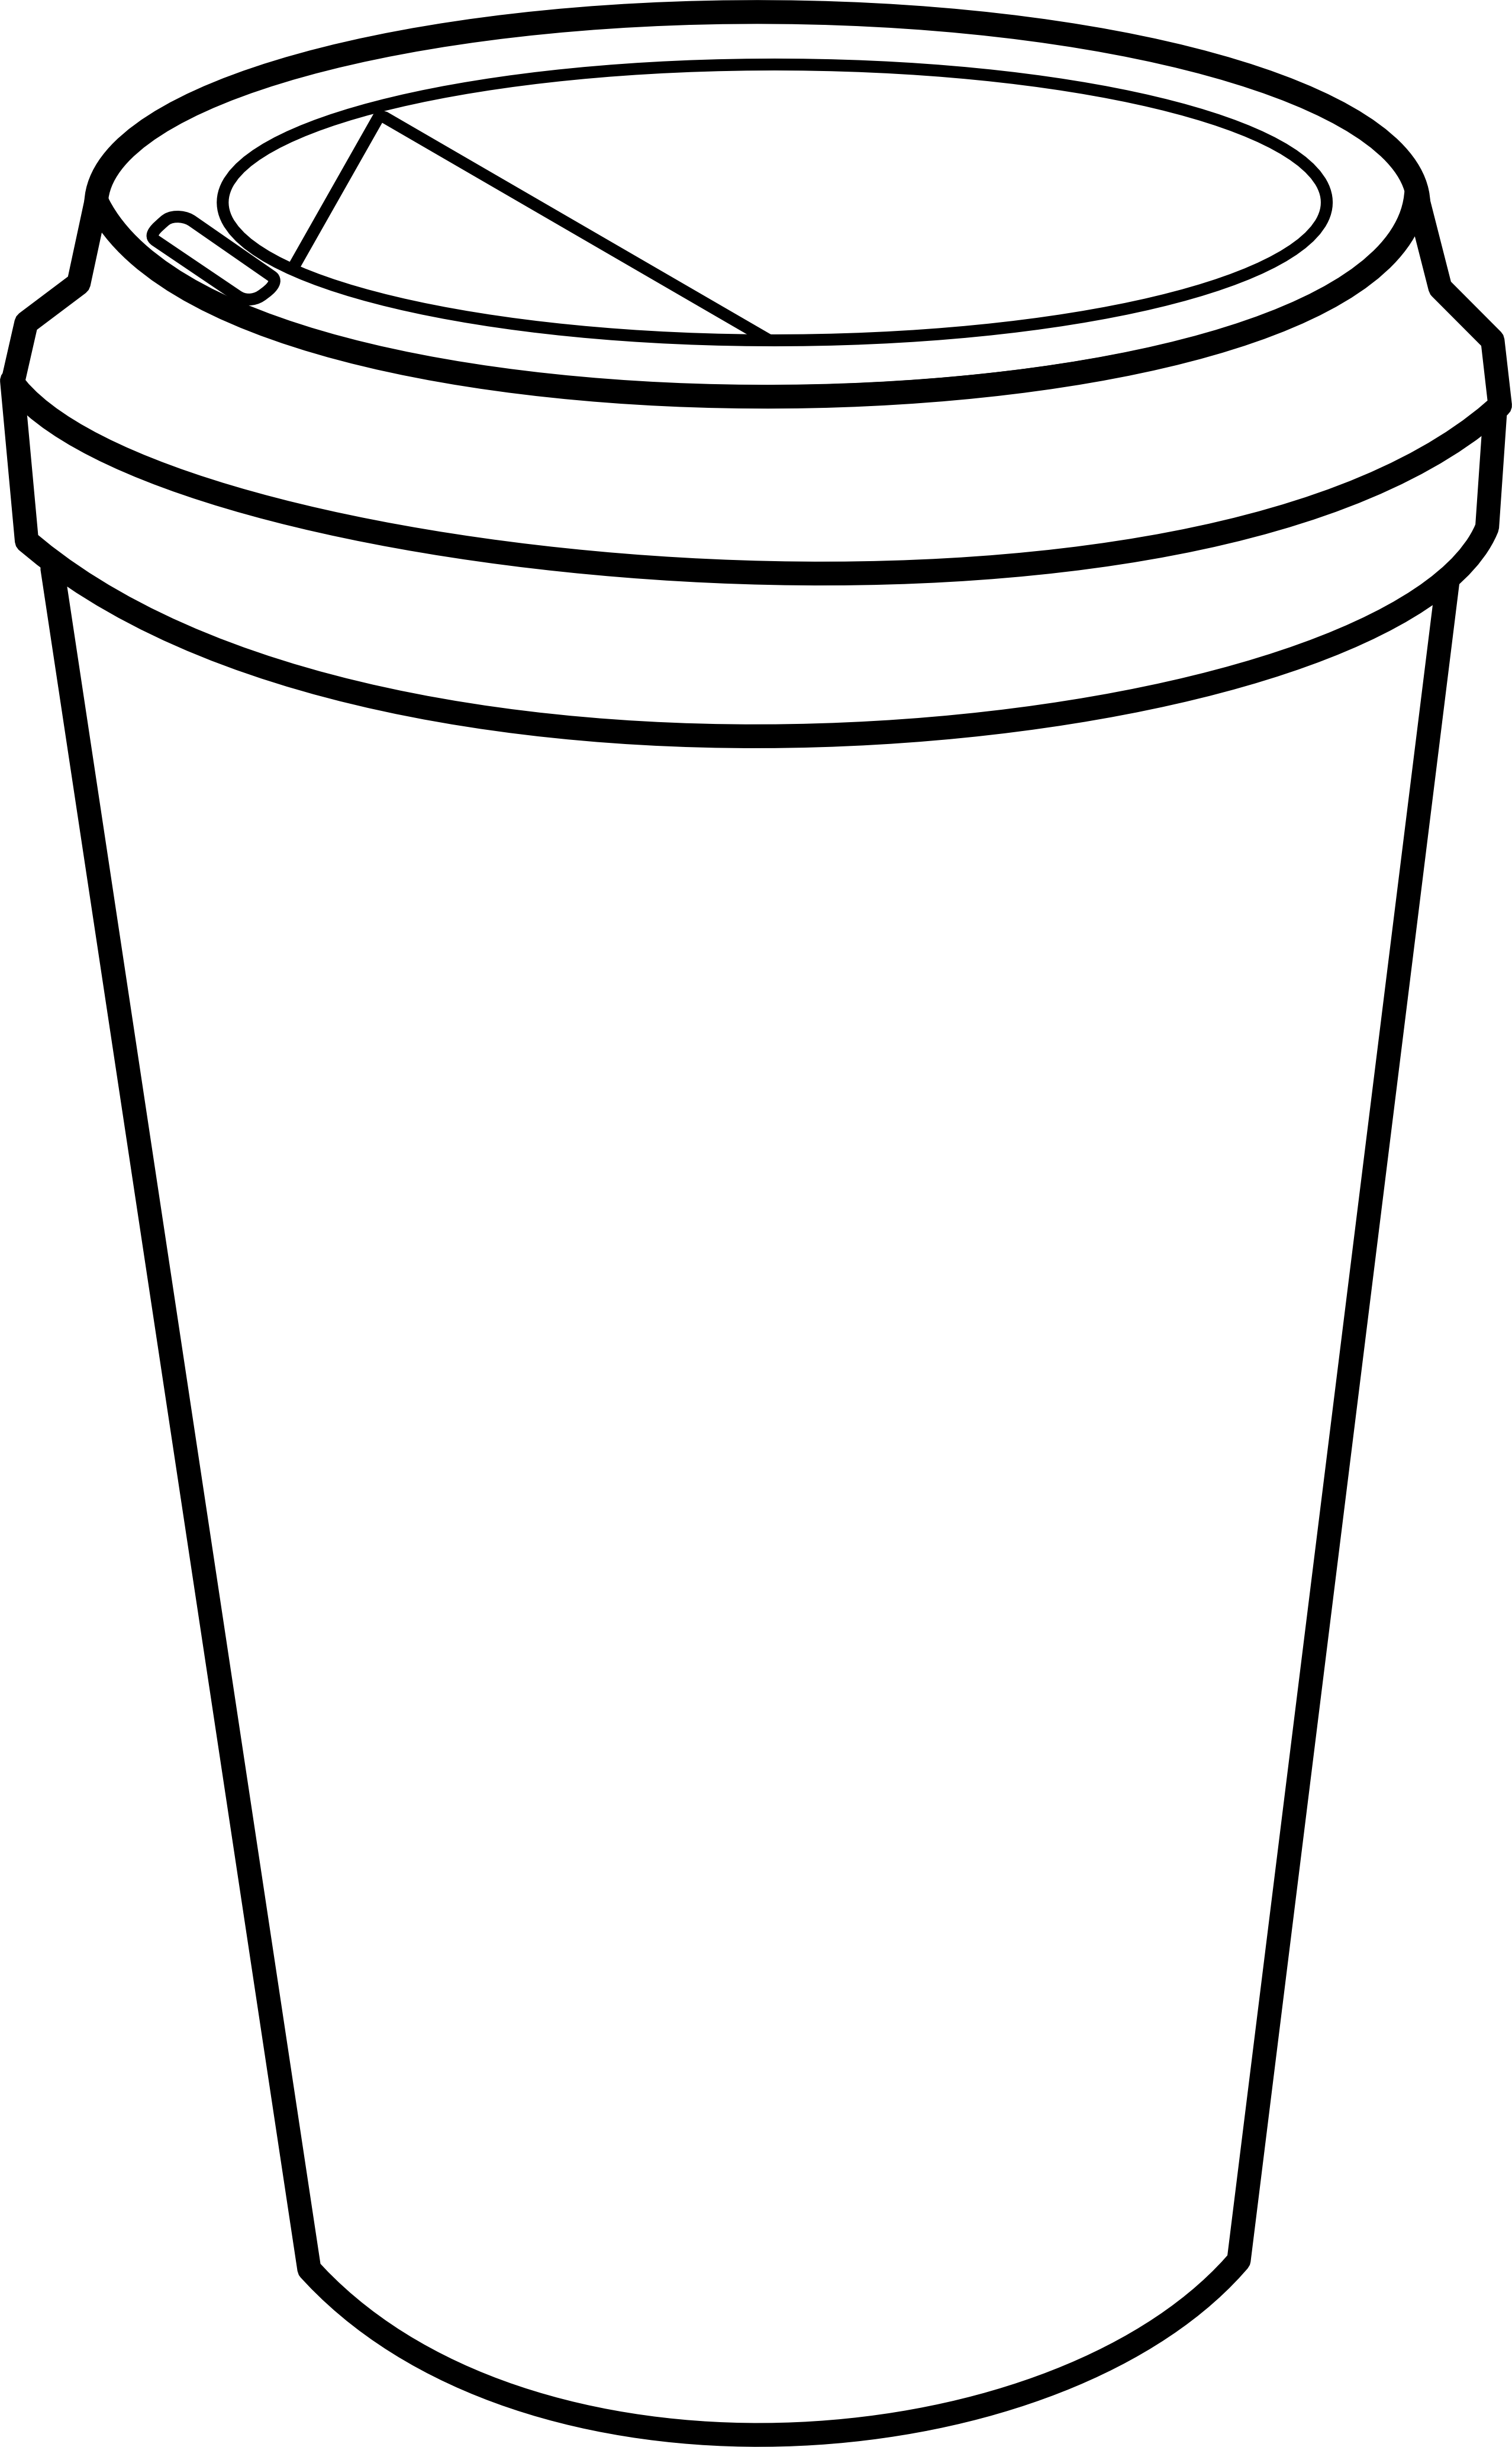 Cups coloring pages download and print for free